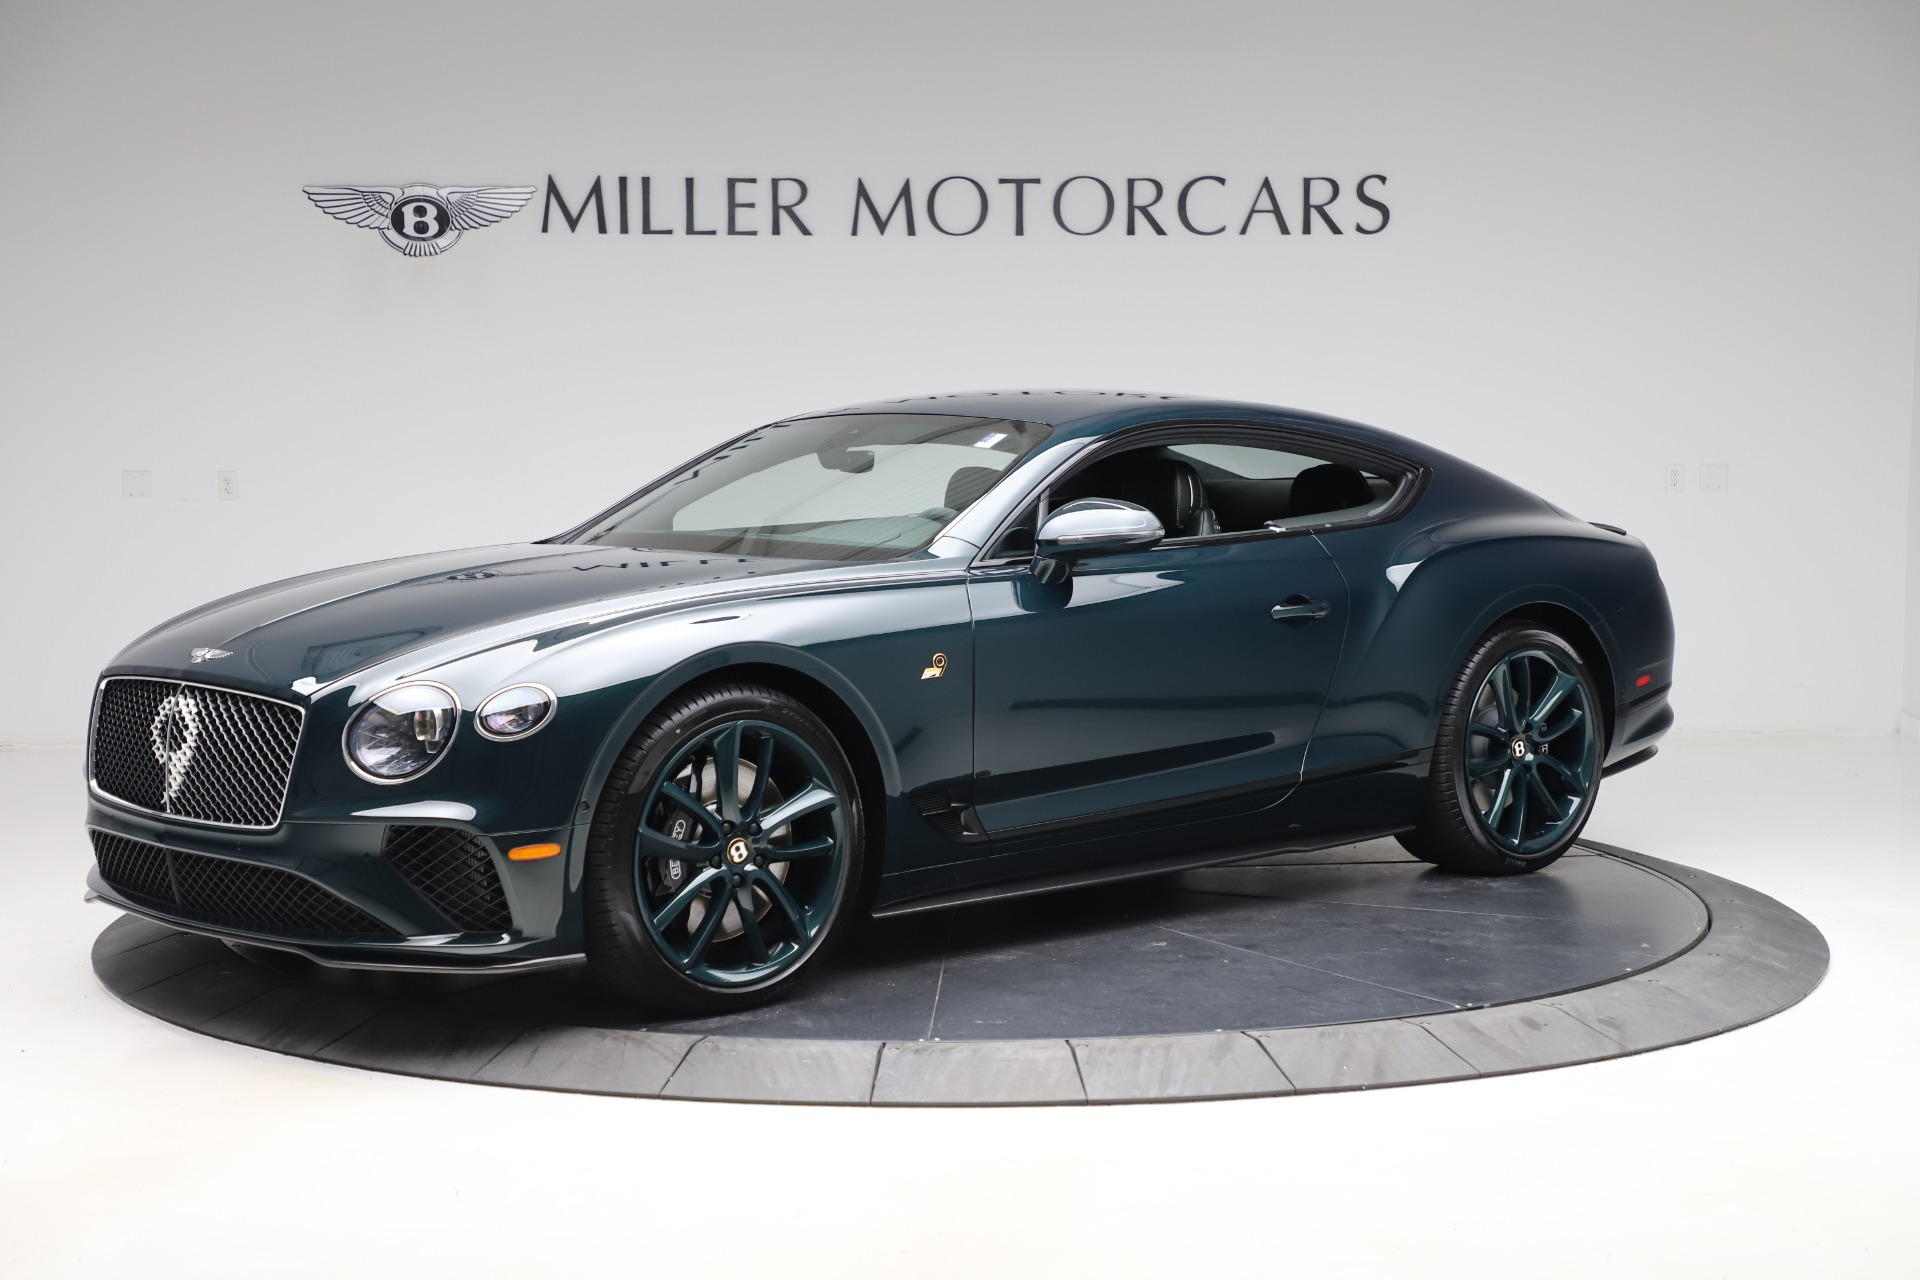 New 2020 Bentley Continental Gt W12 Number 9 For Sale Miller Motorcars Stock B1479